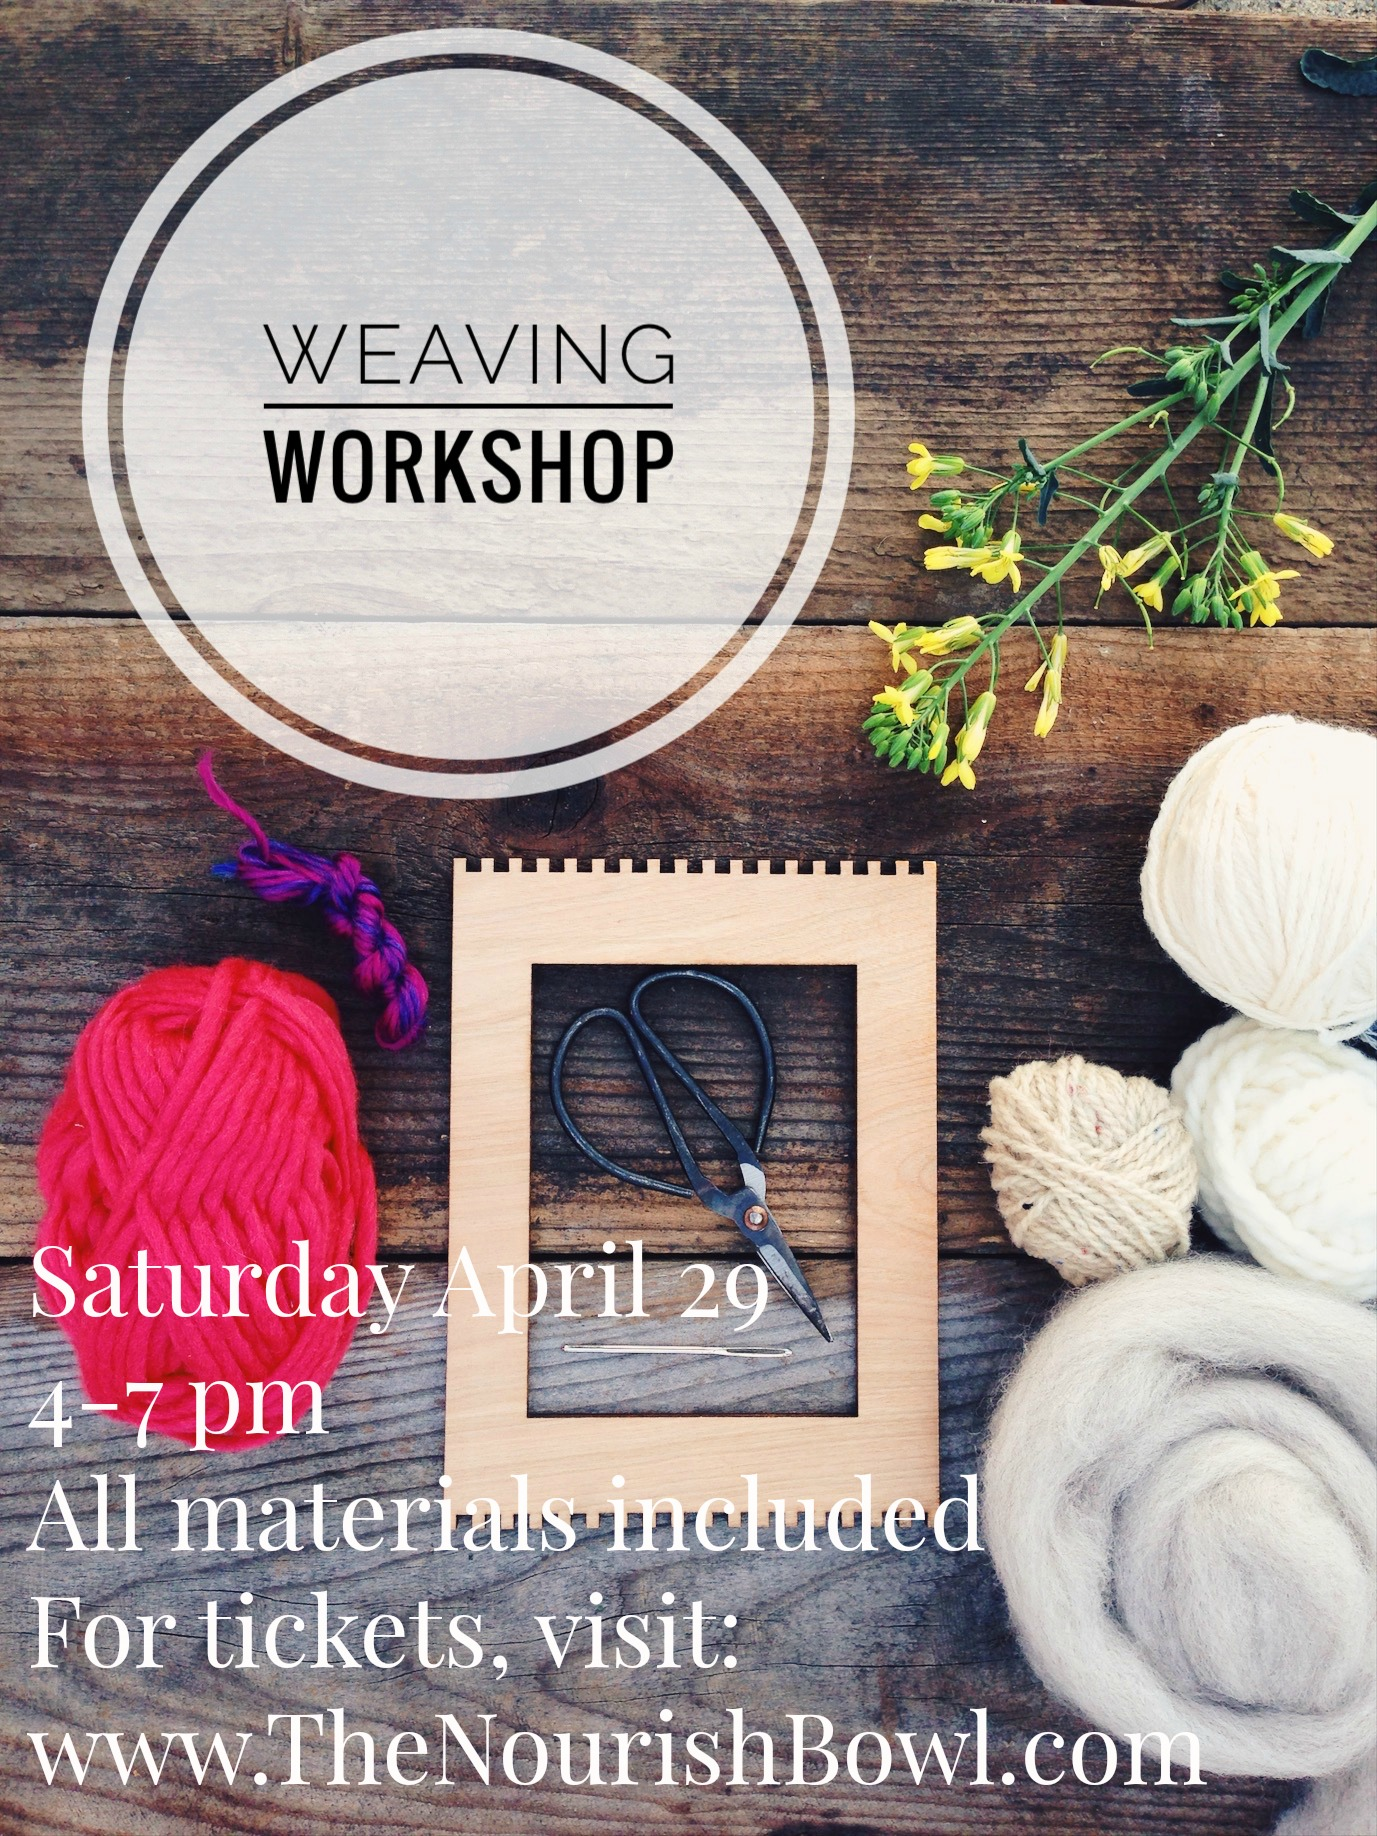 Join me at the super sweet  Wallflower Boutique  in downtown Santa Cruz for an evening of creative flow.  I've teamed up with  Santa Cruz Engraving Co.  to provide locally made bamboo looms that are gorgeous to work on. Support local business and get your craft on. Tickets available here--> Count me in!